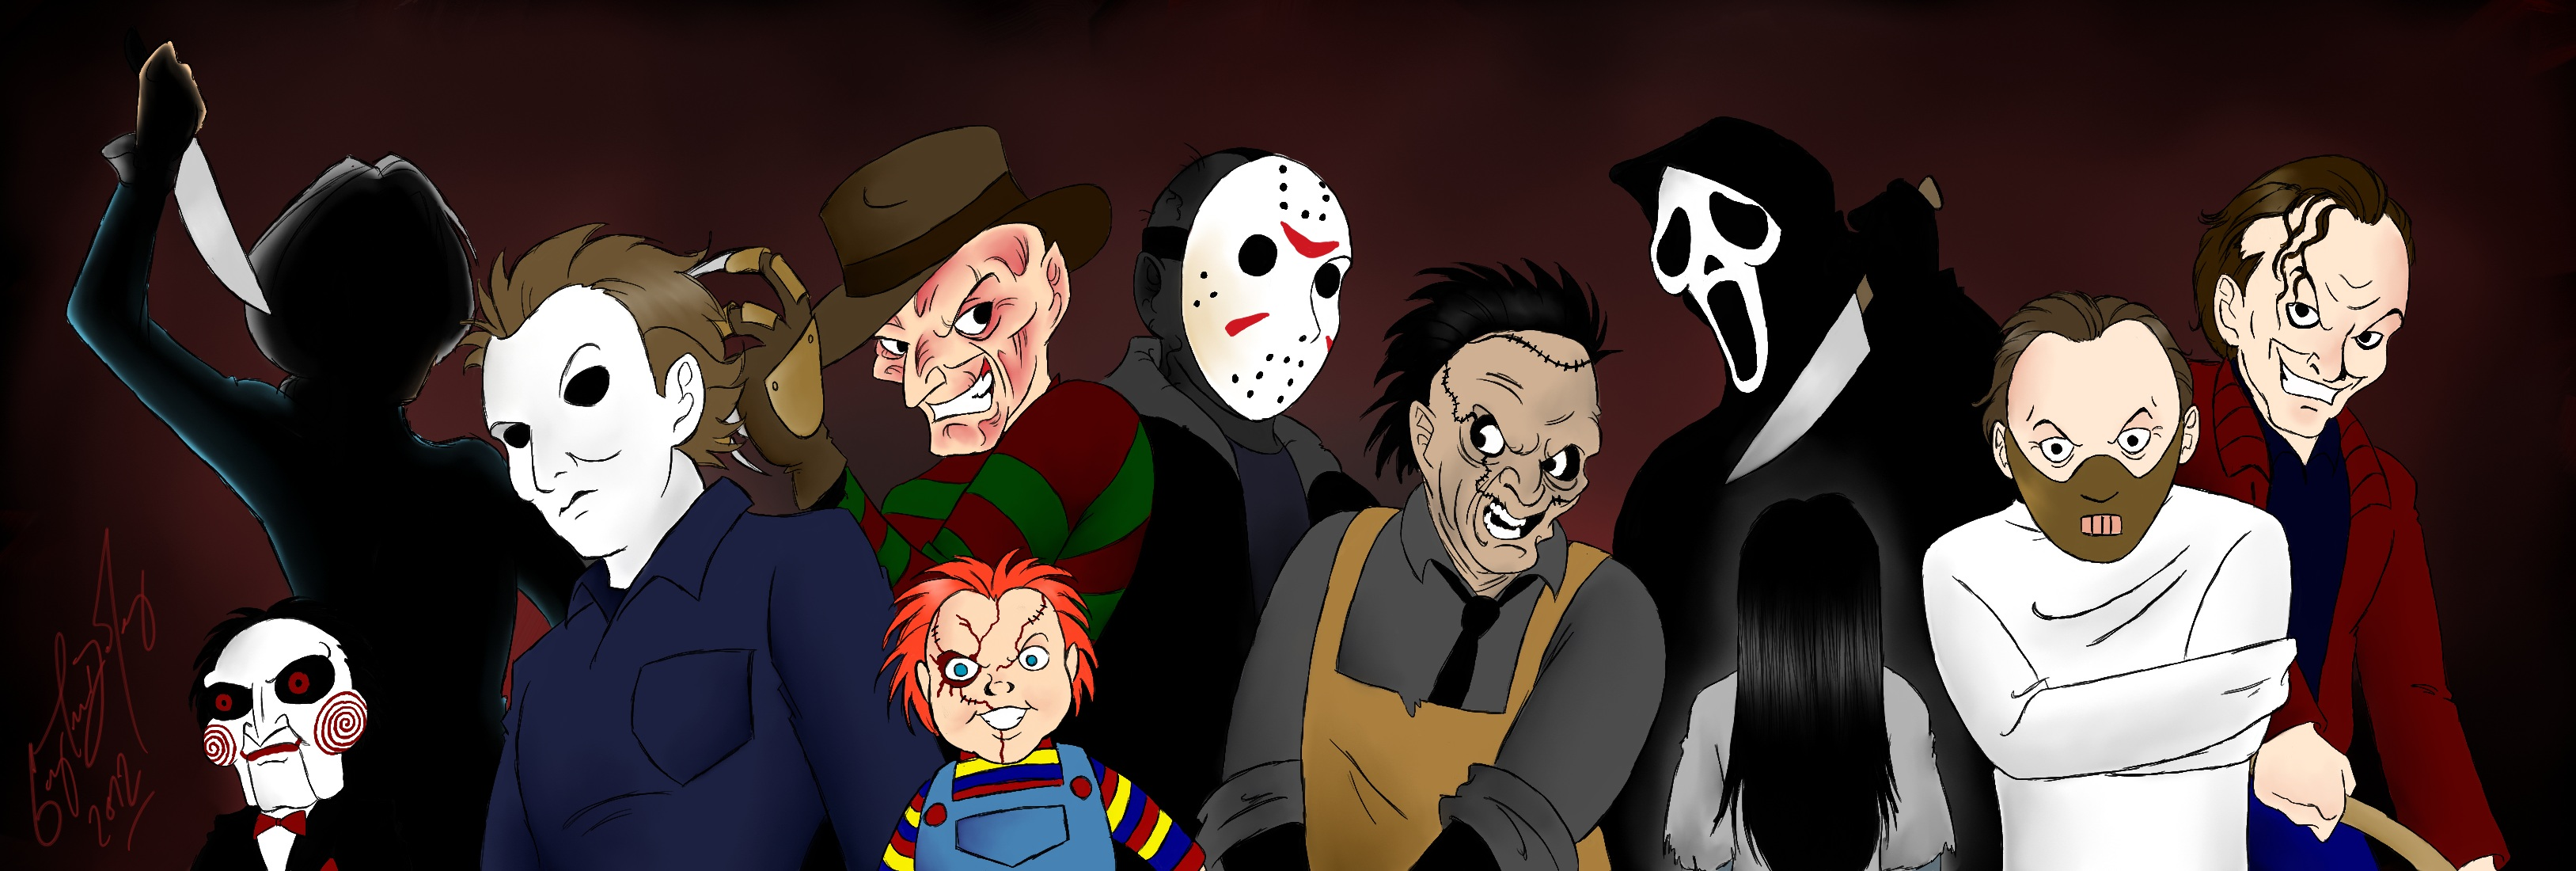 Horror movie icons wallpaper wallpapersafari for Deviantart wallpaper